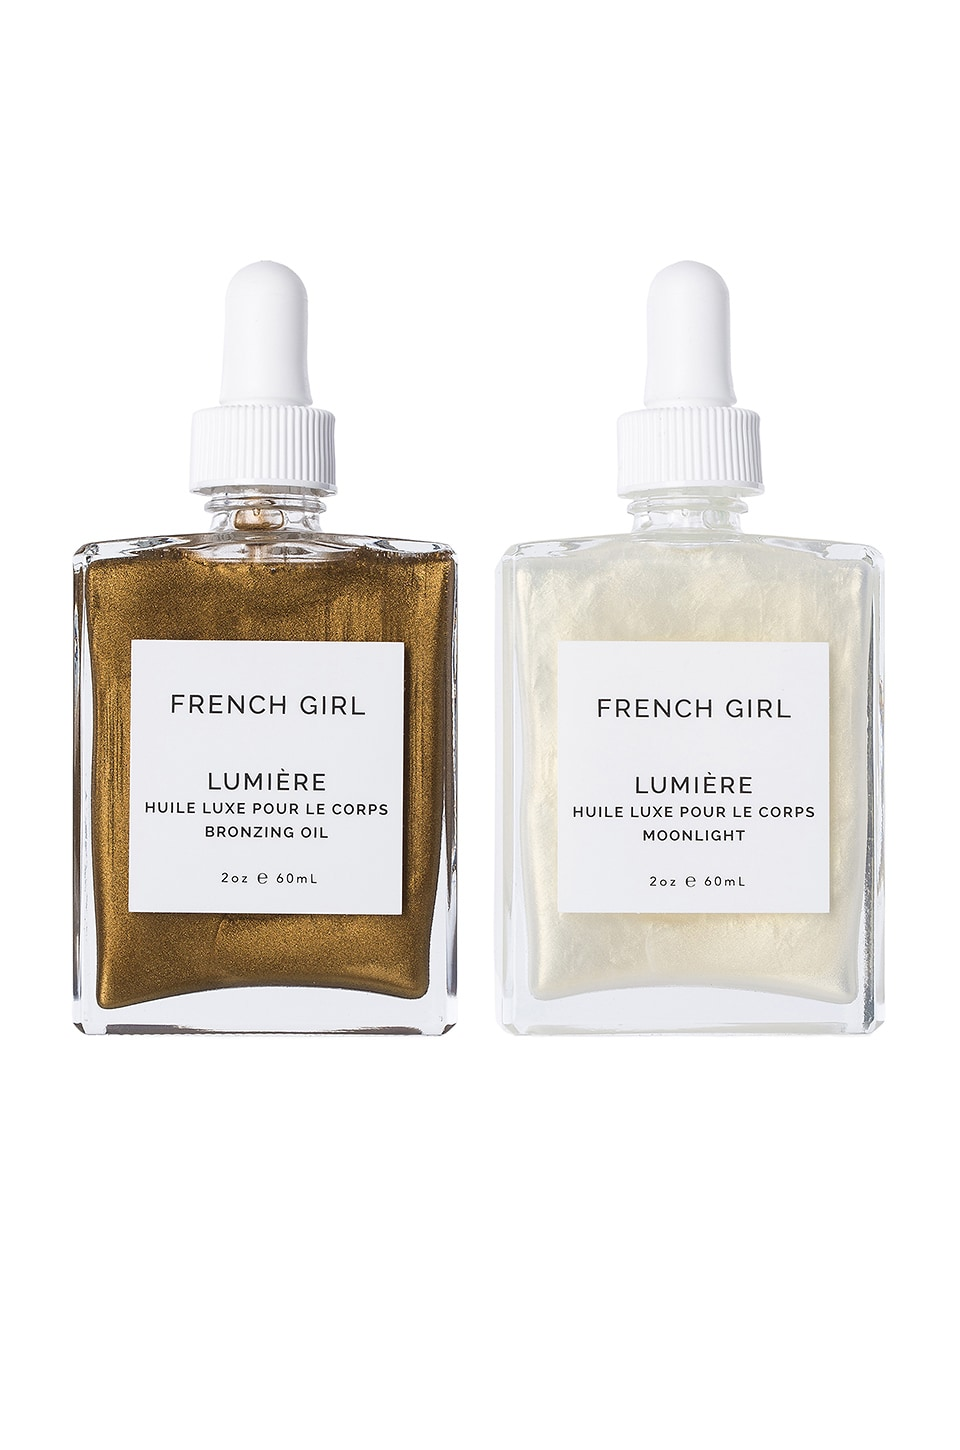 French Girl Organics Lumiere Body Oil Duo in Moonlight & Bronzing